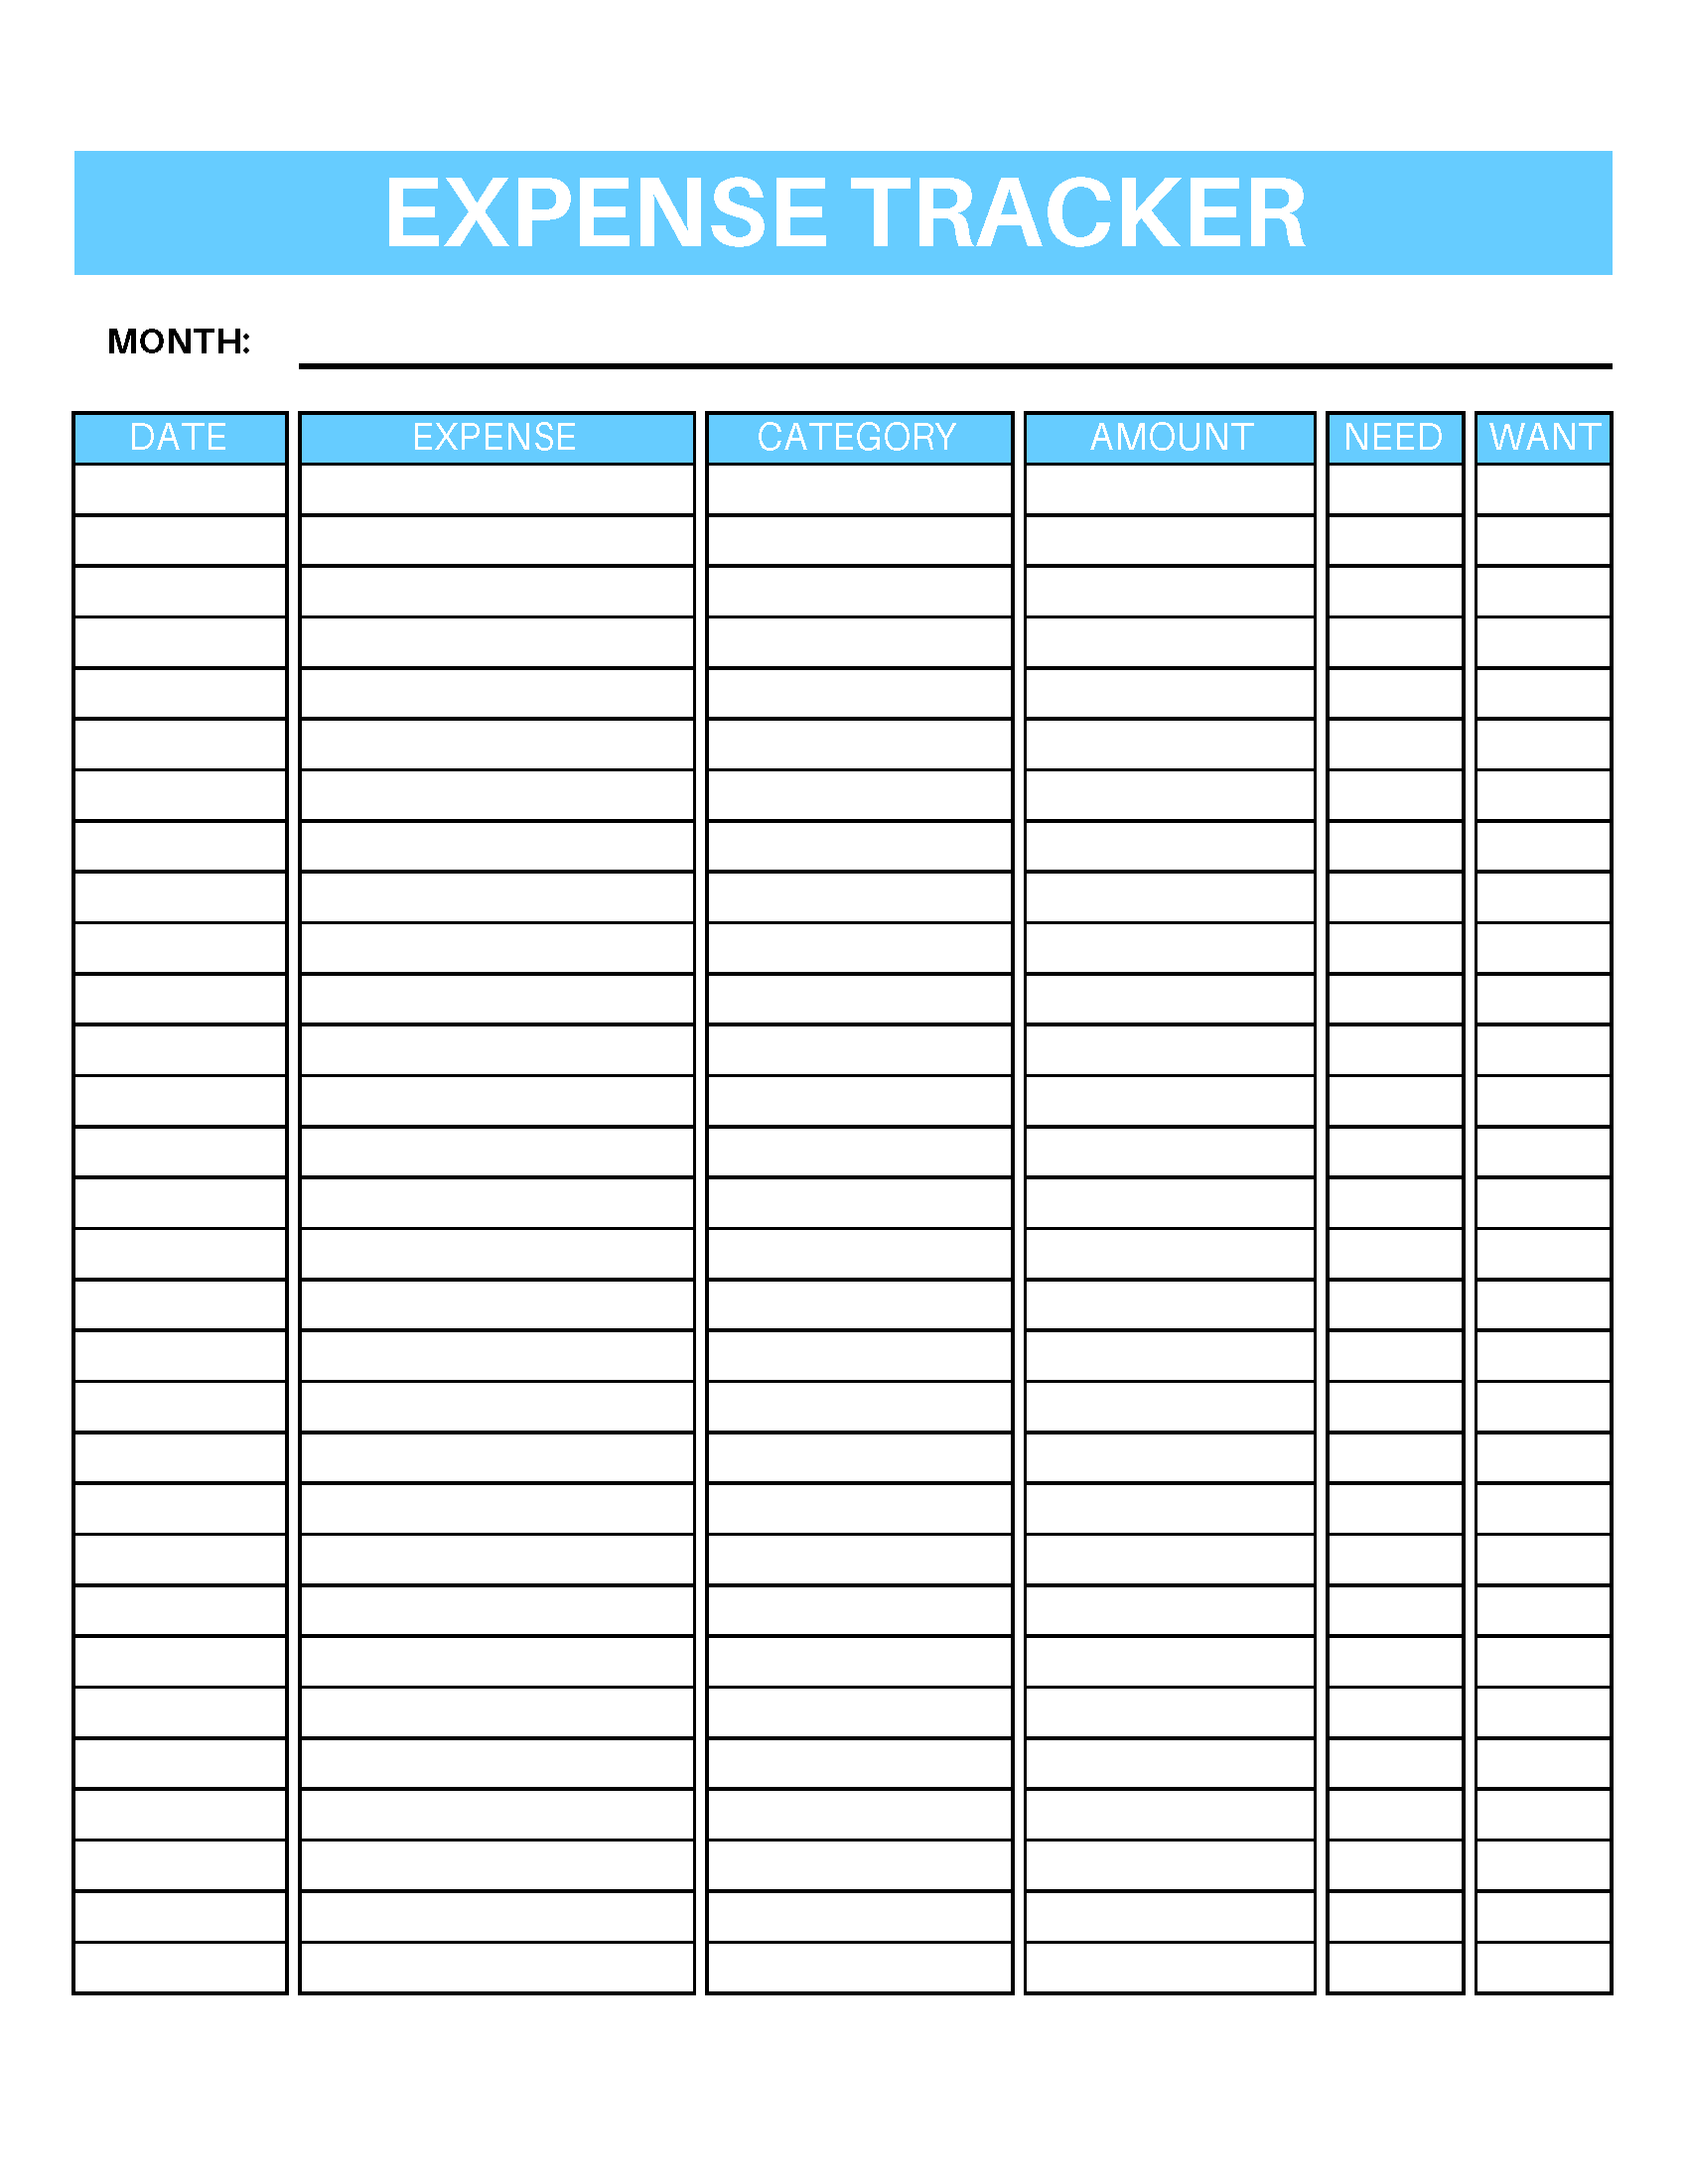 This is an image of Inventive Free Printable Expense Tracker